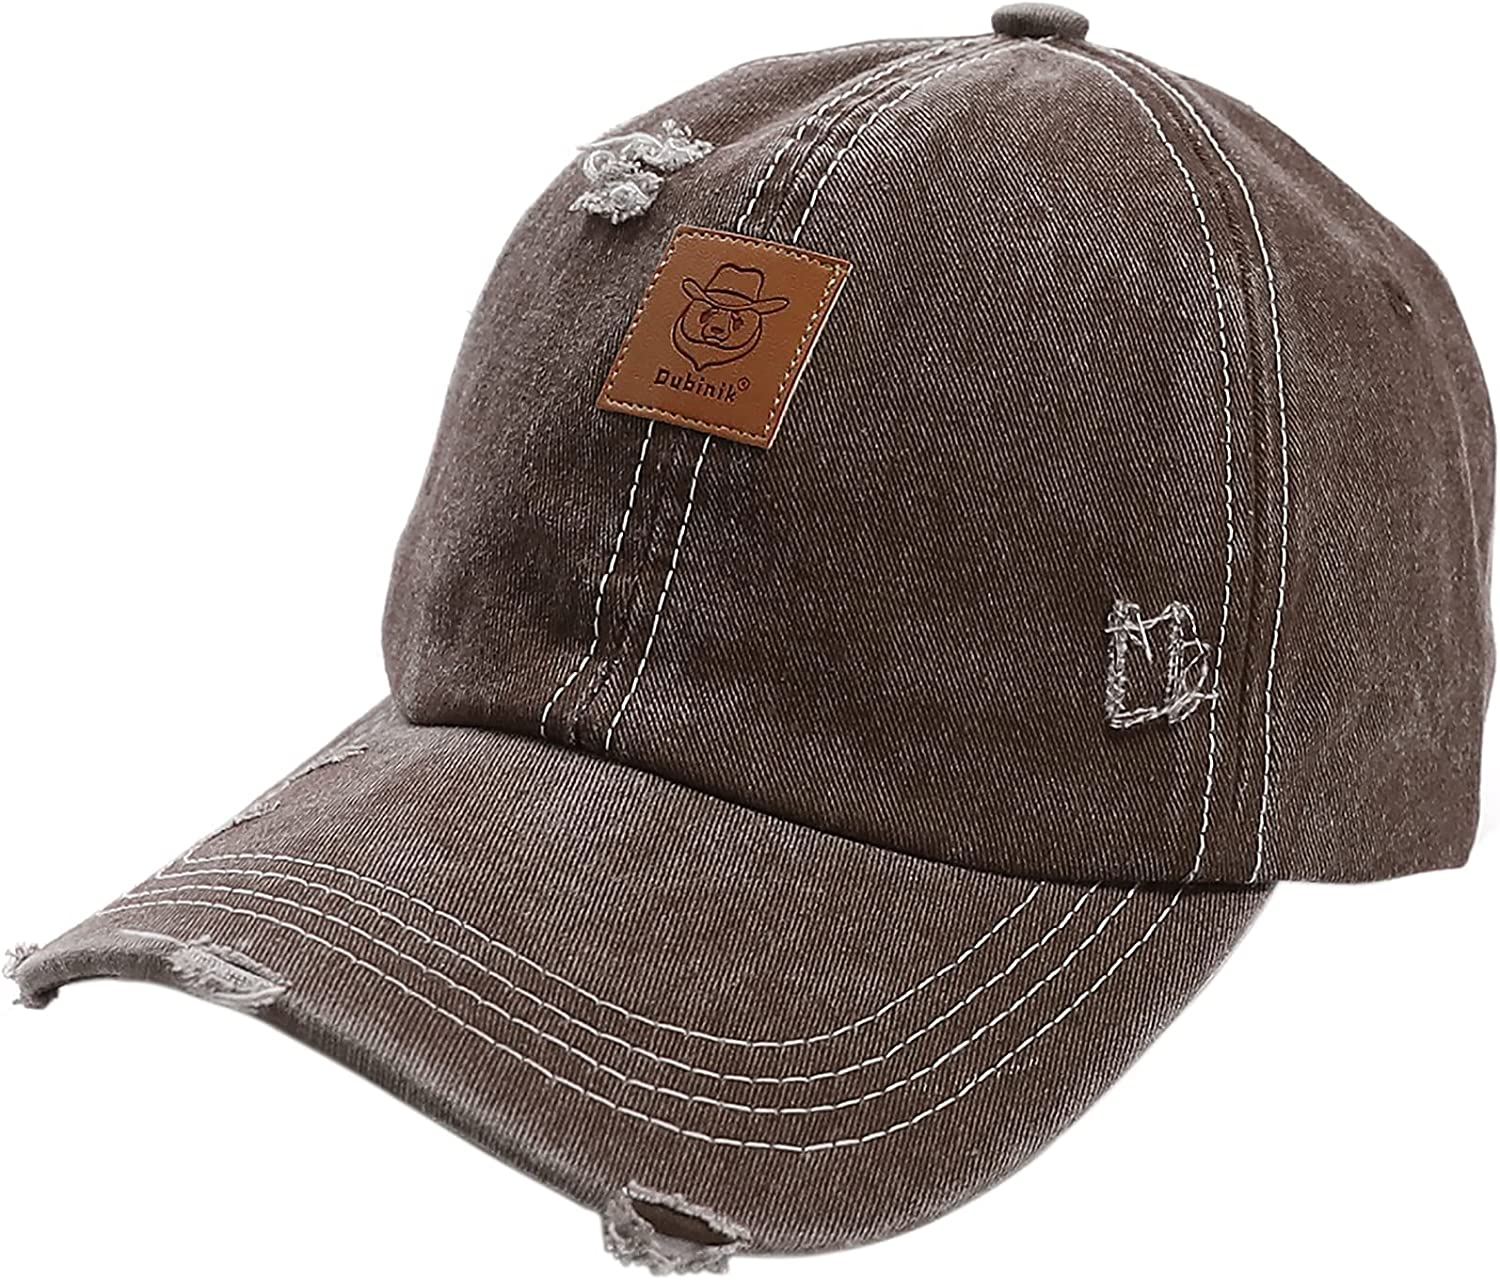 Max 77% OFF Dubinik Washed Distressed Cotton Super beauty product restock quality top Criss-Cross Denim Hat Ponytail